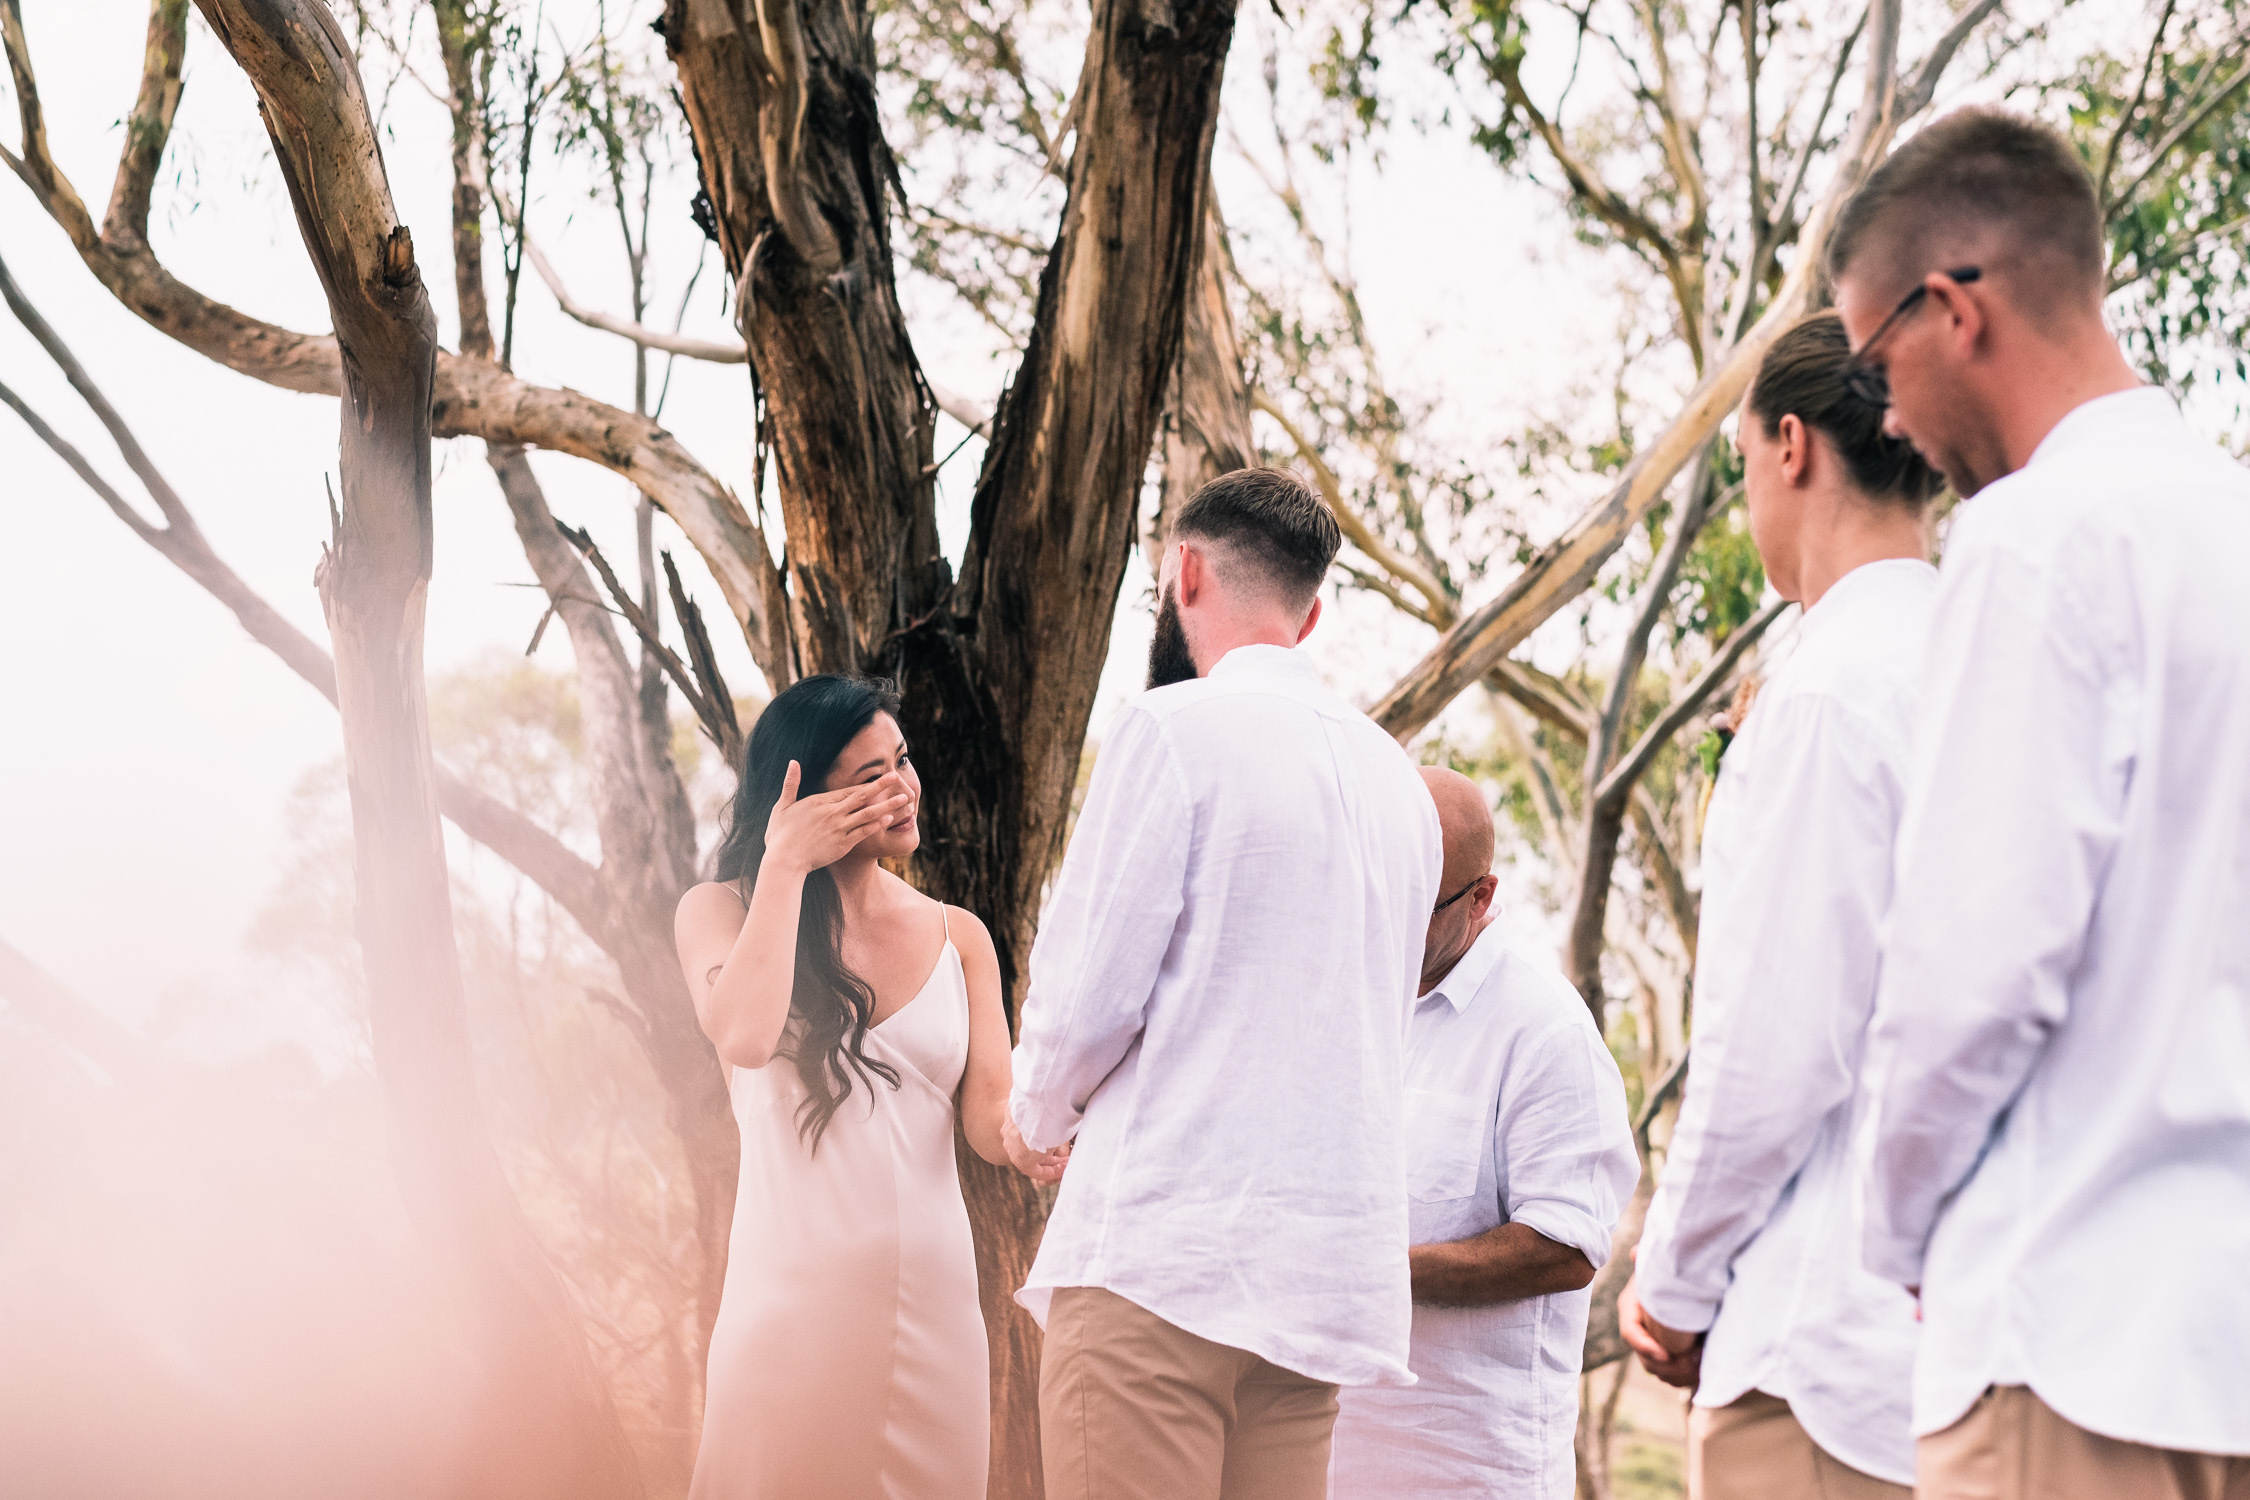 Melbourne Sunnystones Camp Wedding - bride crying during vows at outdoor ceremony